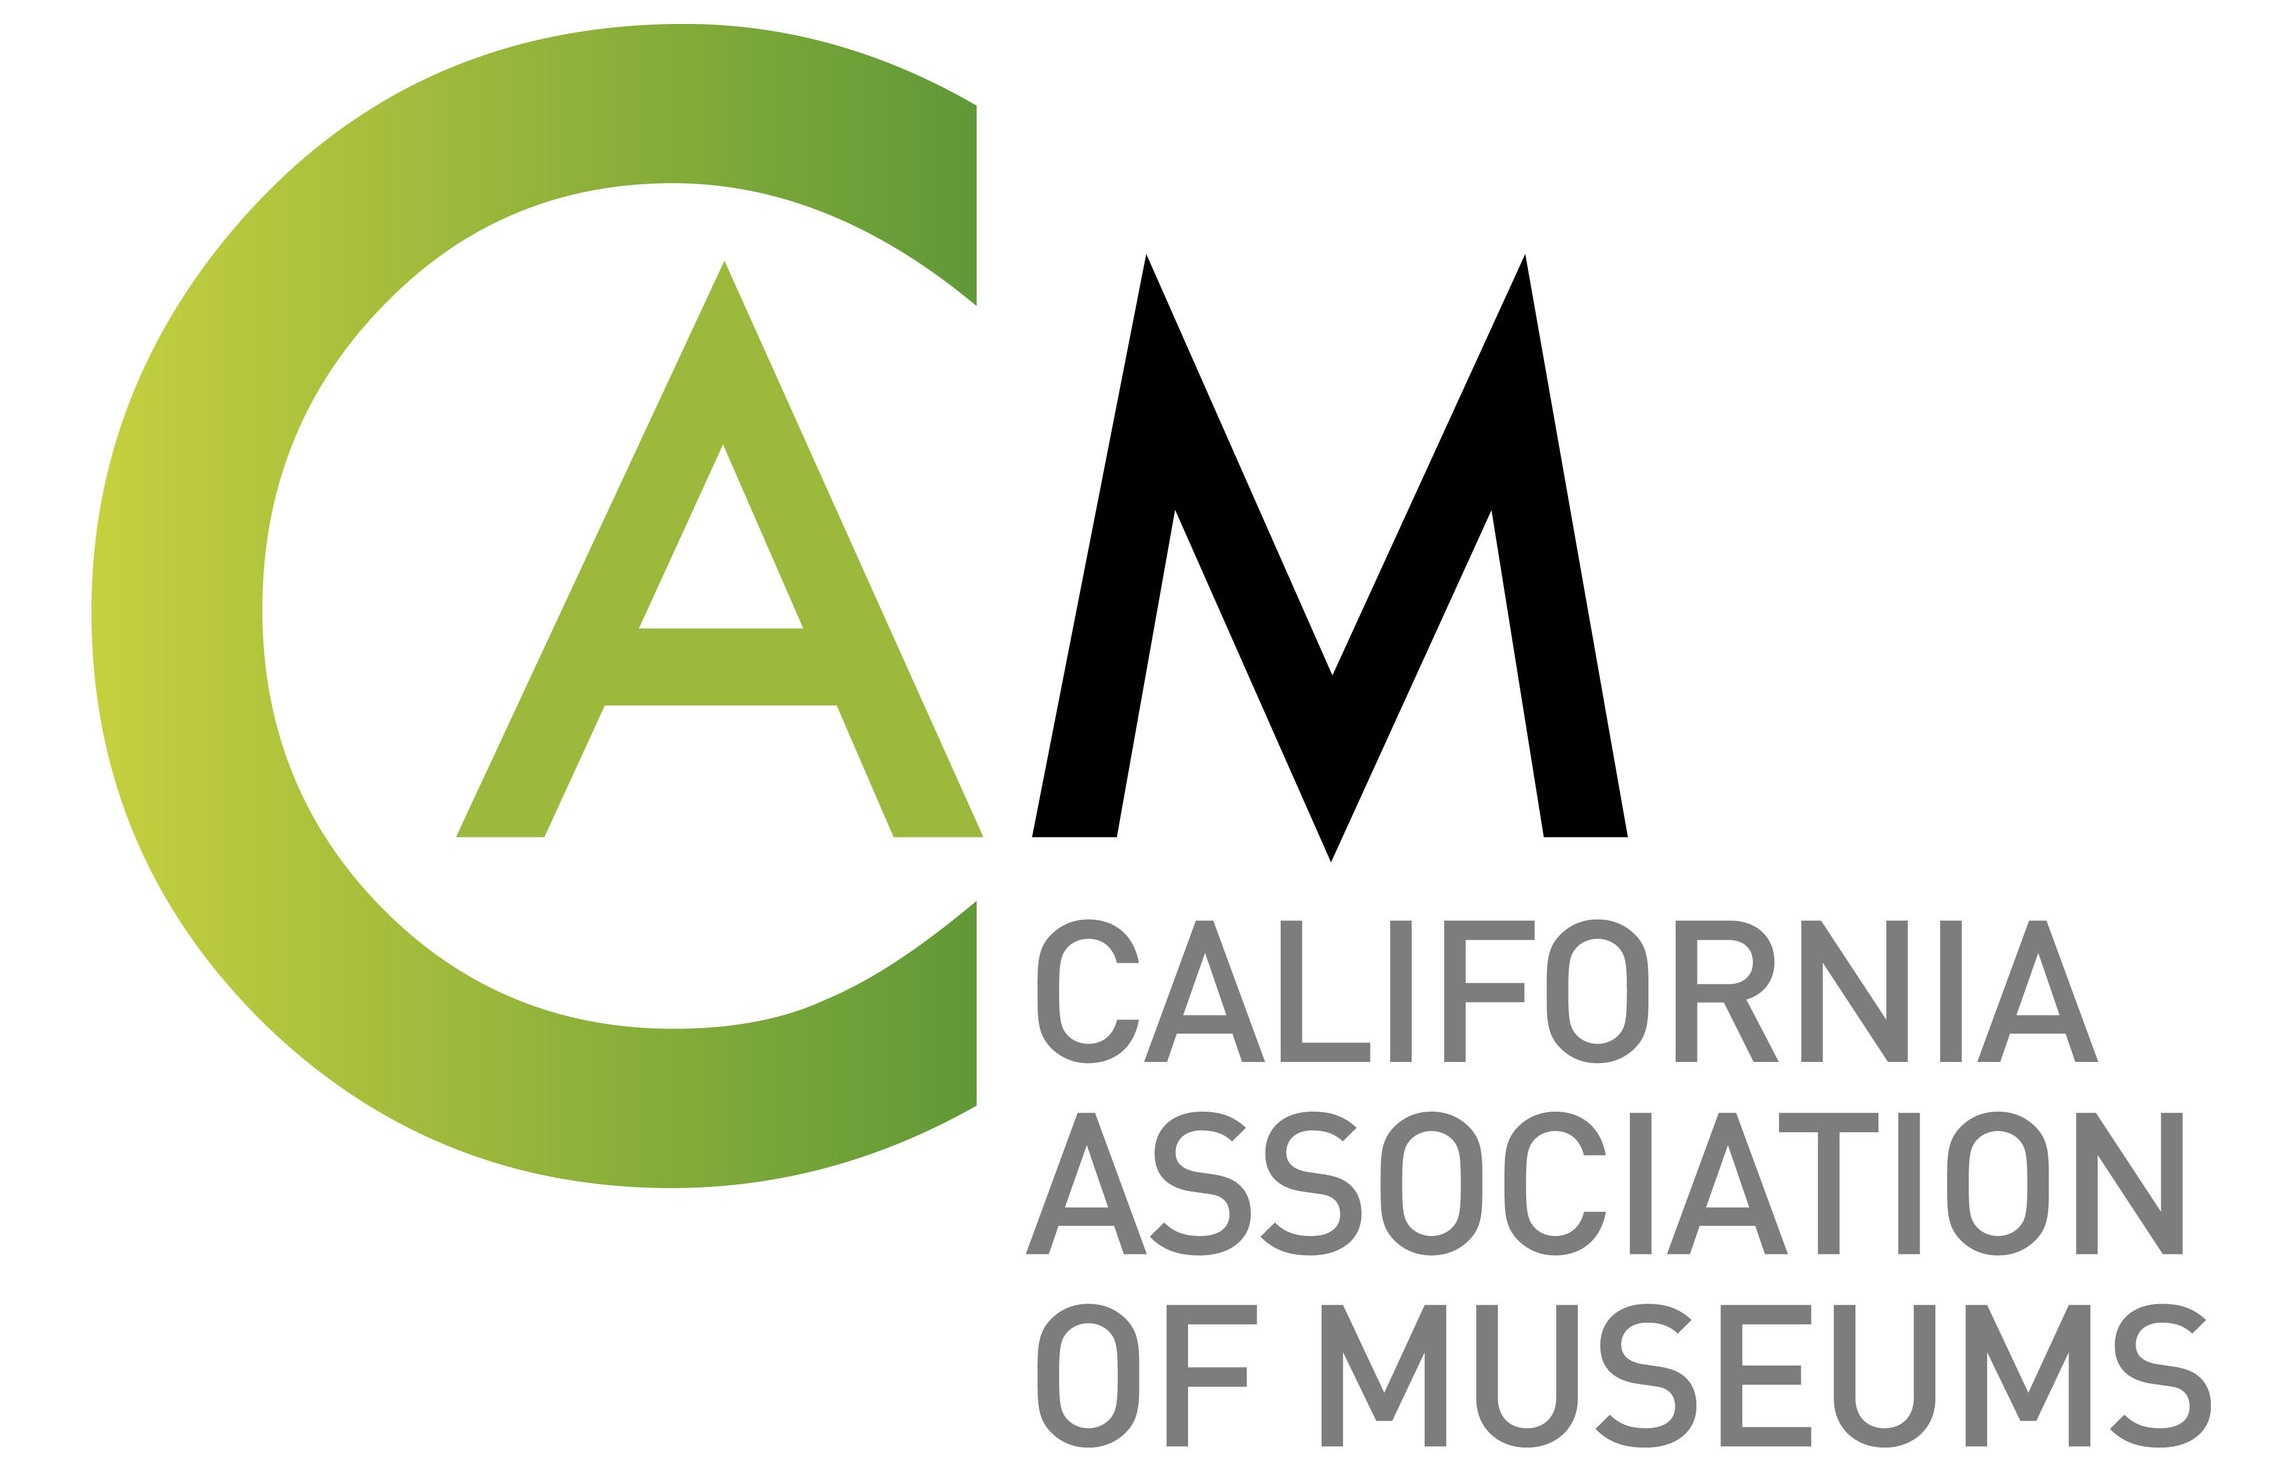 California+Association+of+Museums++Logo.jpg